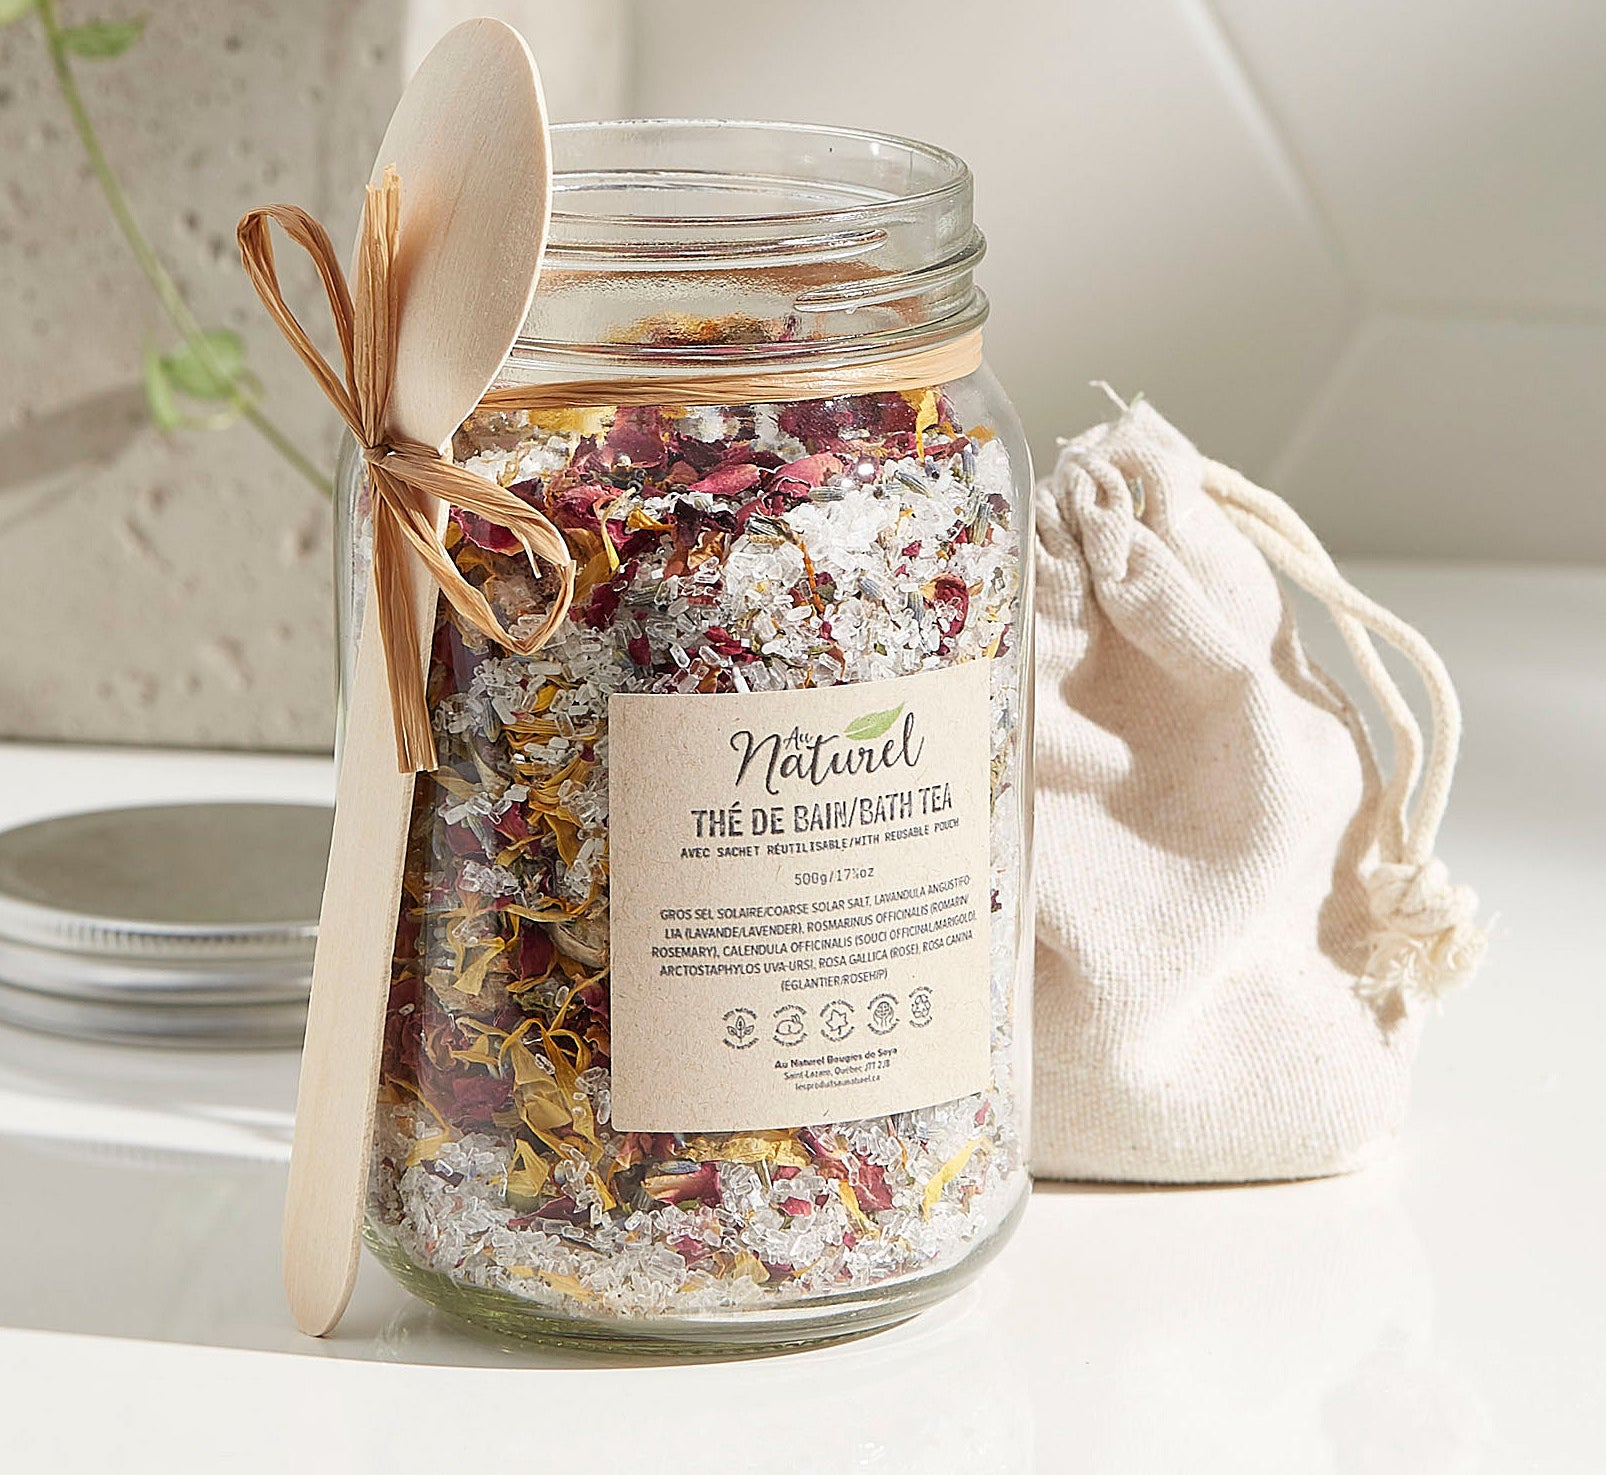 A large jar filled with bath salts There is a small wooden spoon tied around the jar with a string